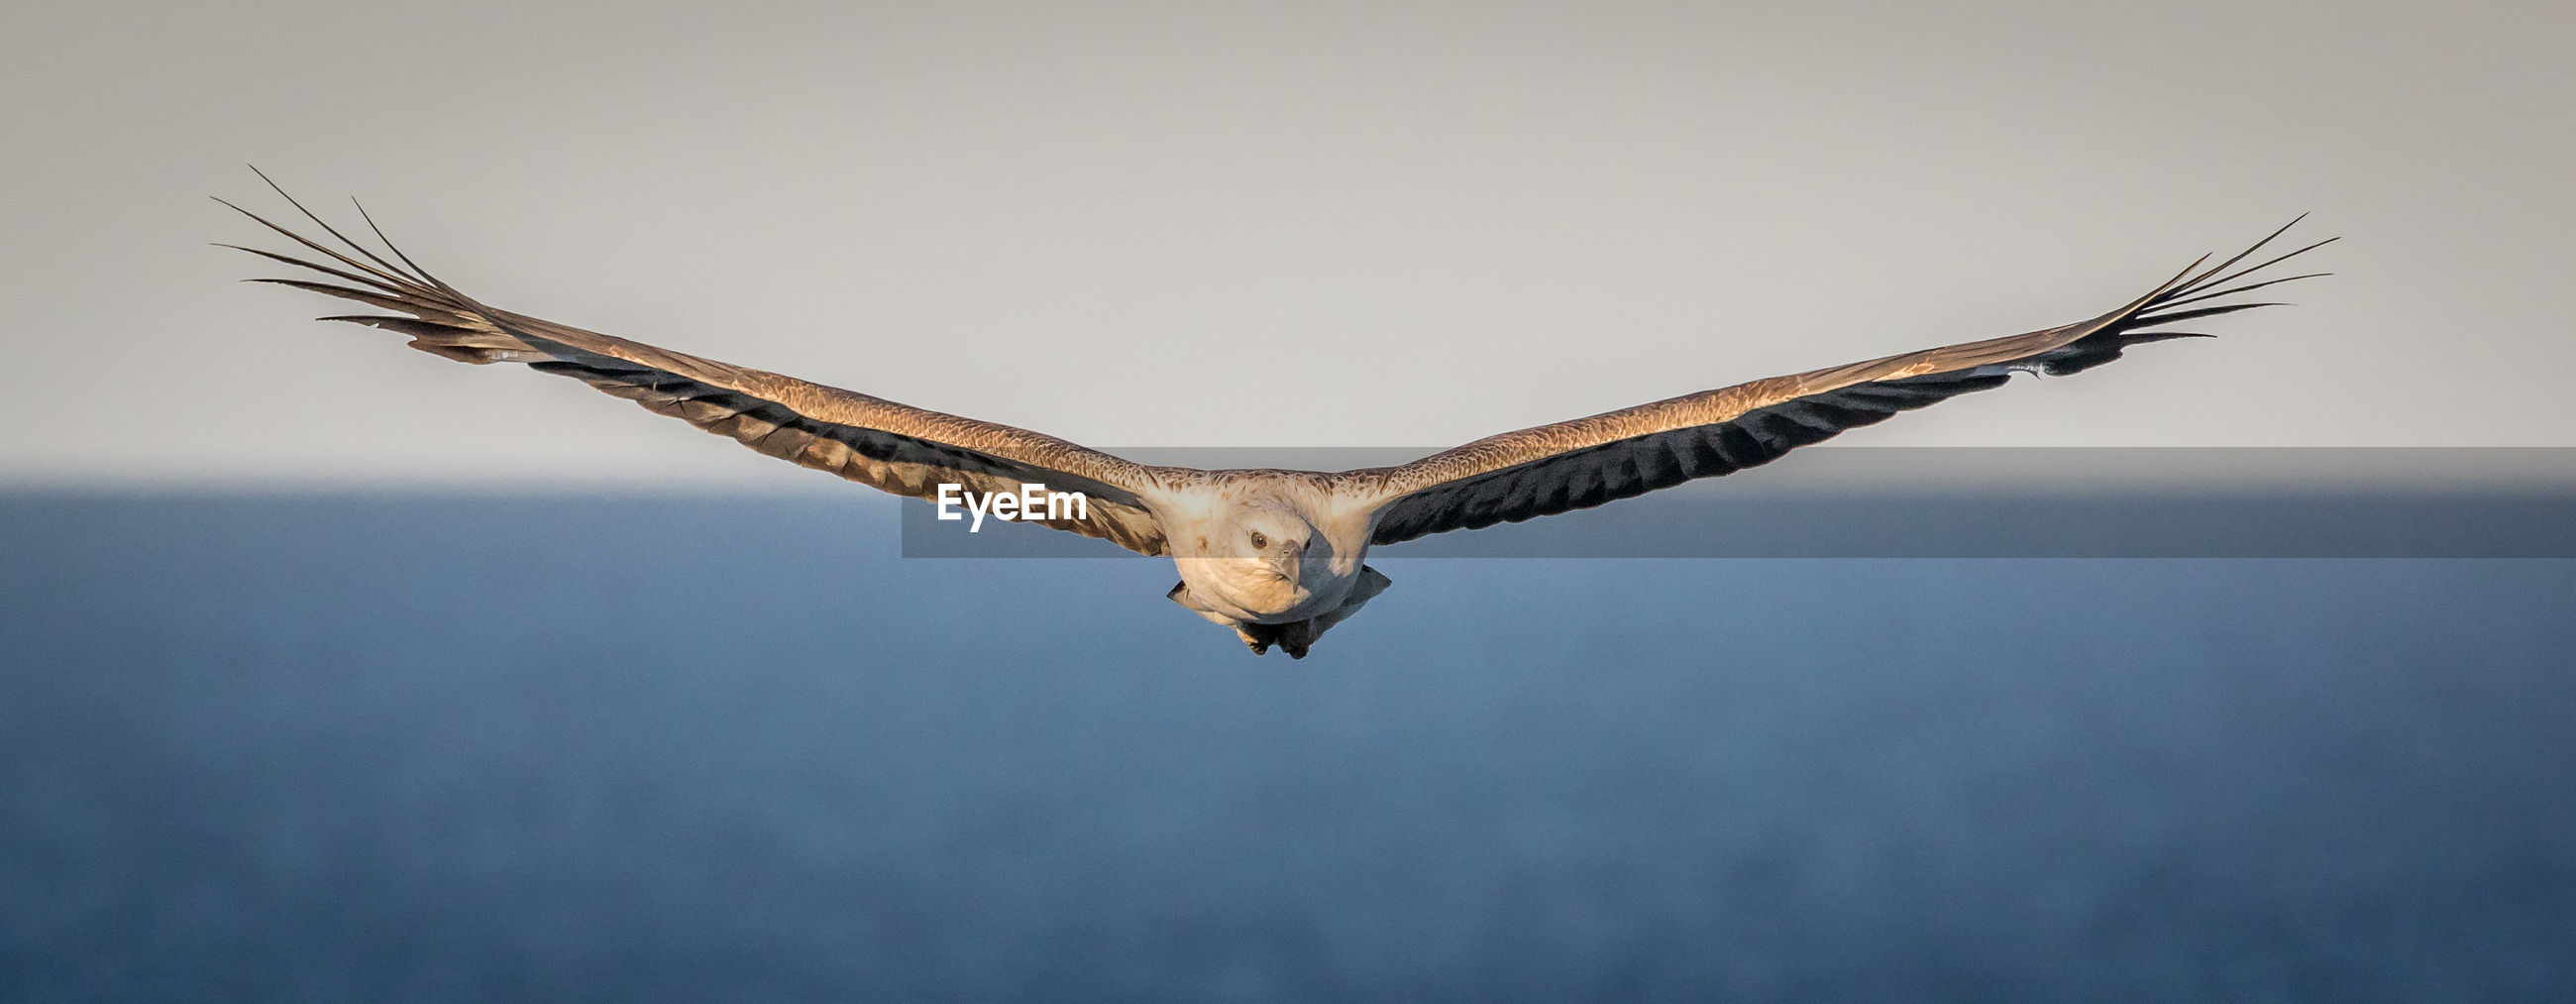 Low angle view of eagle flying over sea against clear sky